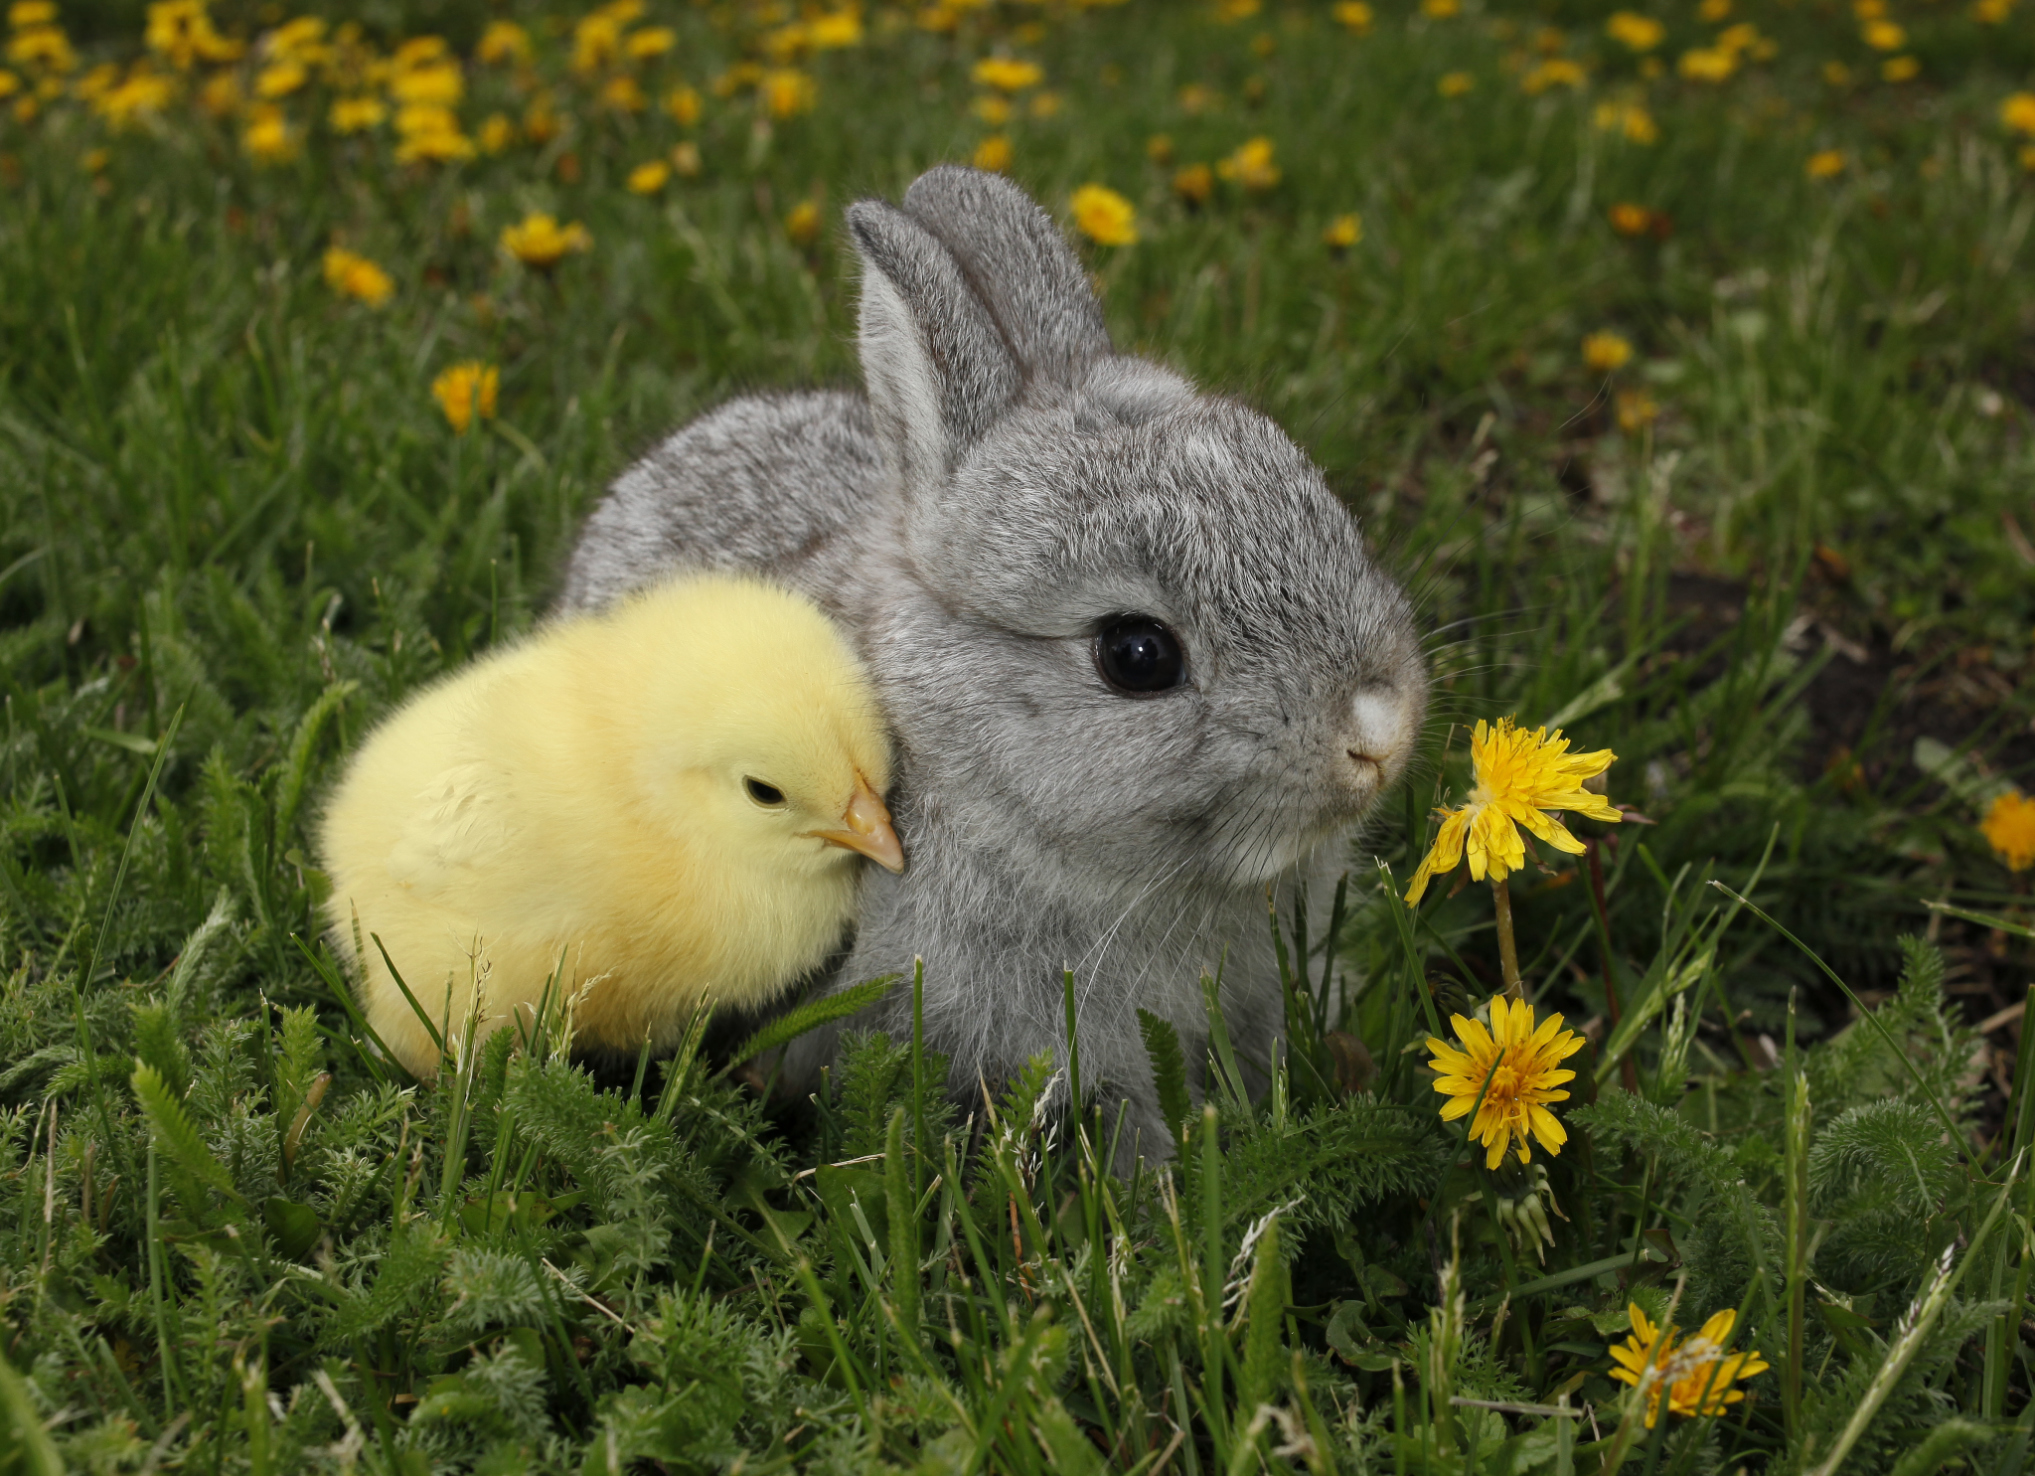 special precautions for raising rabbits and chickens together